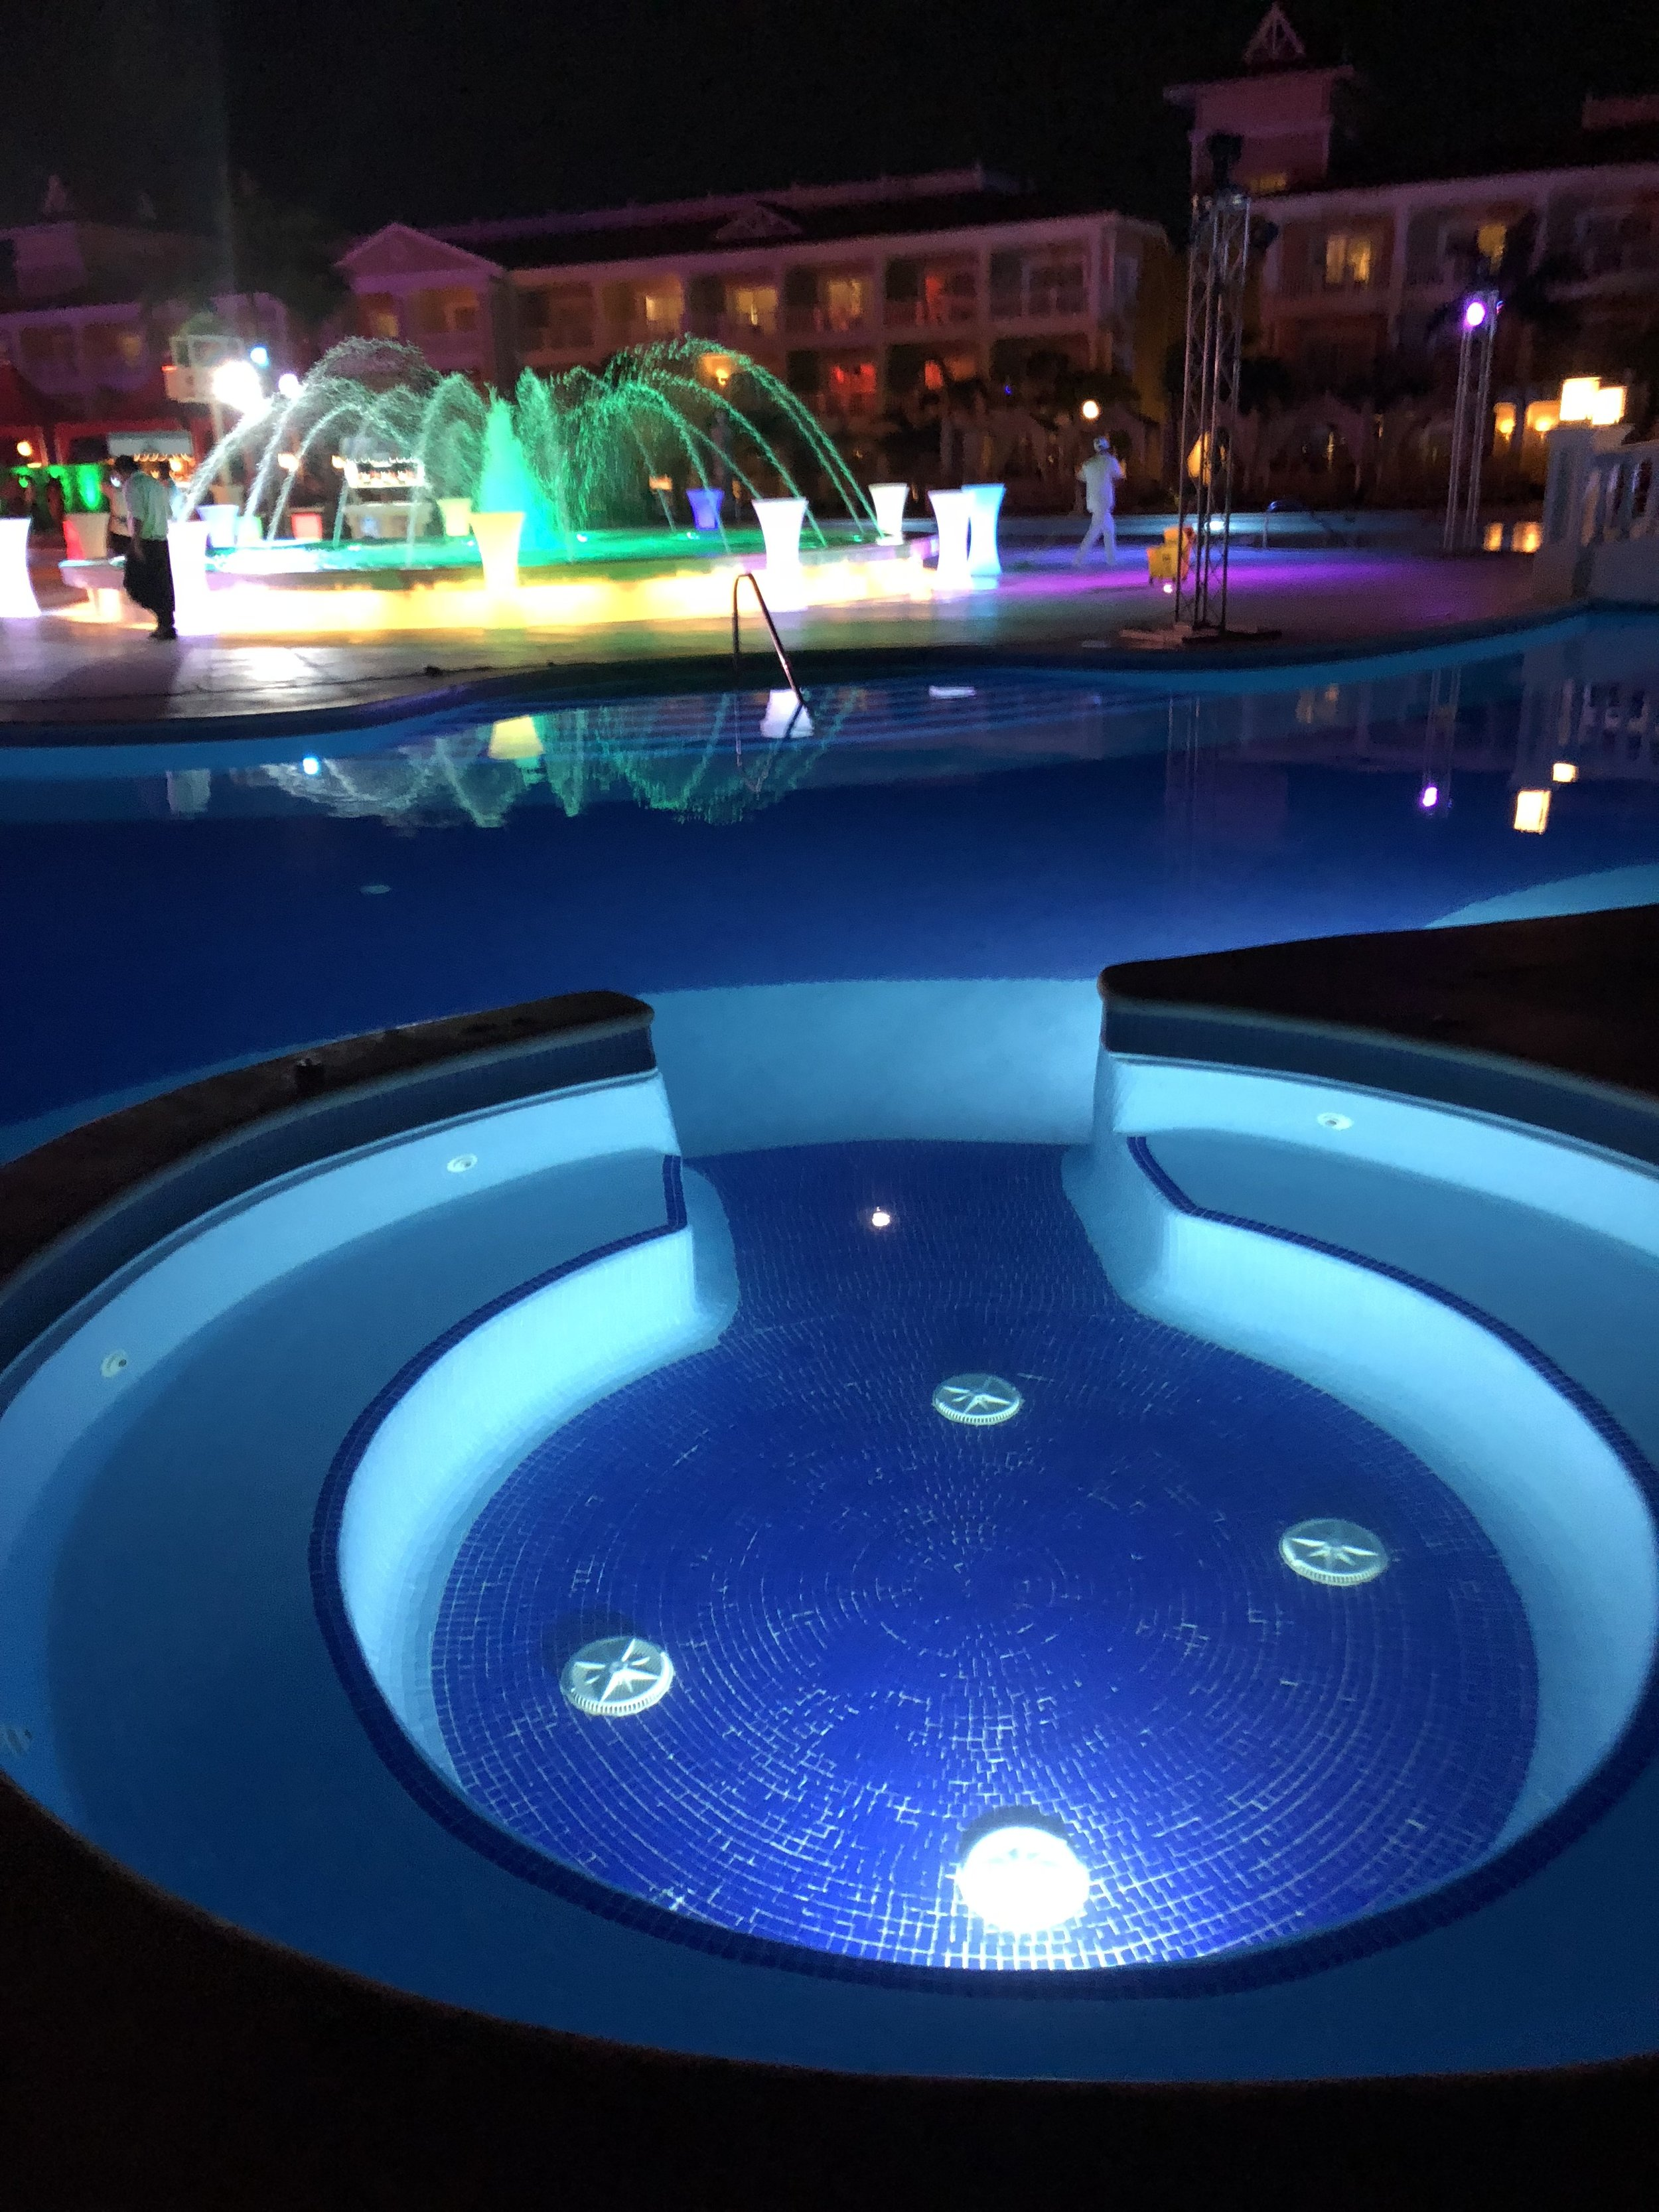 Part of the luxurious swimming pool.